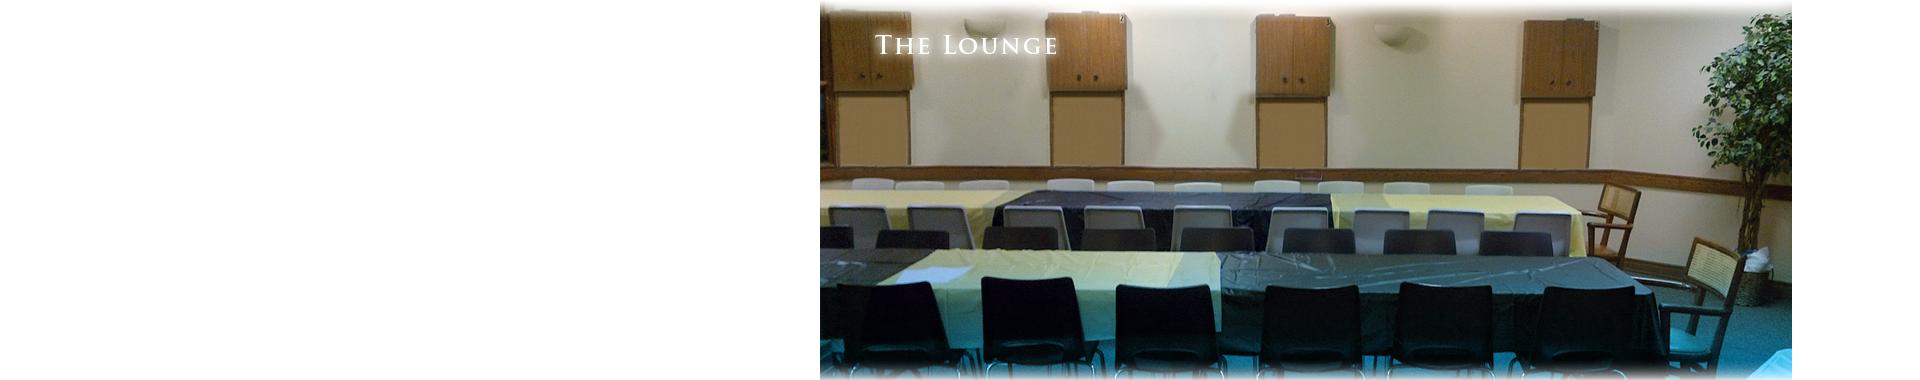 Large Meeting or Event Room for rent in Waterloo Ontario